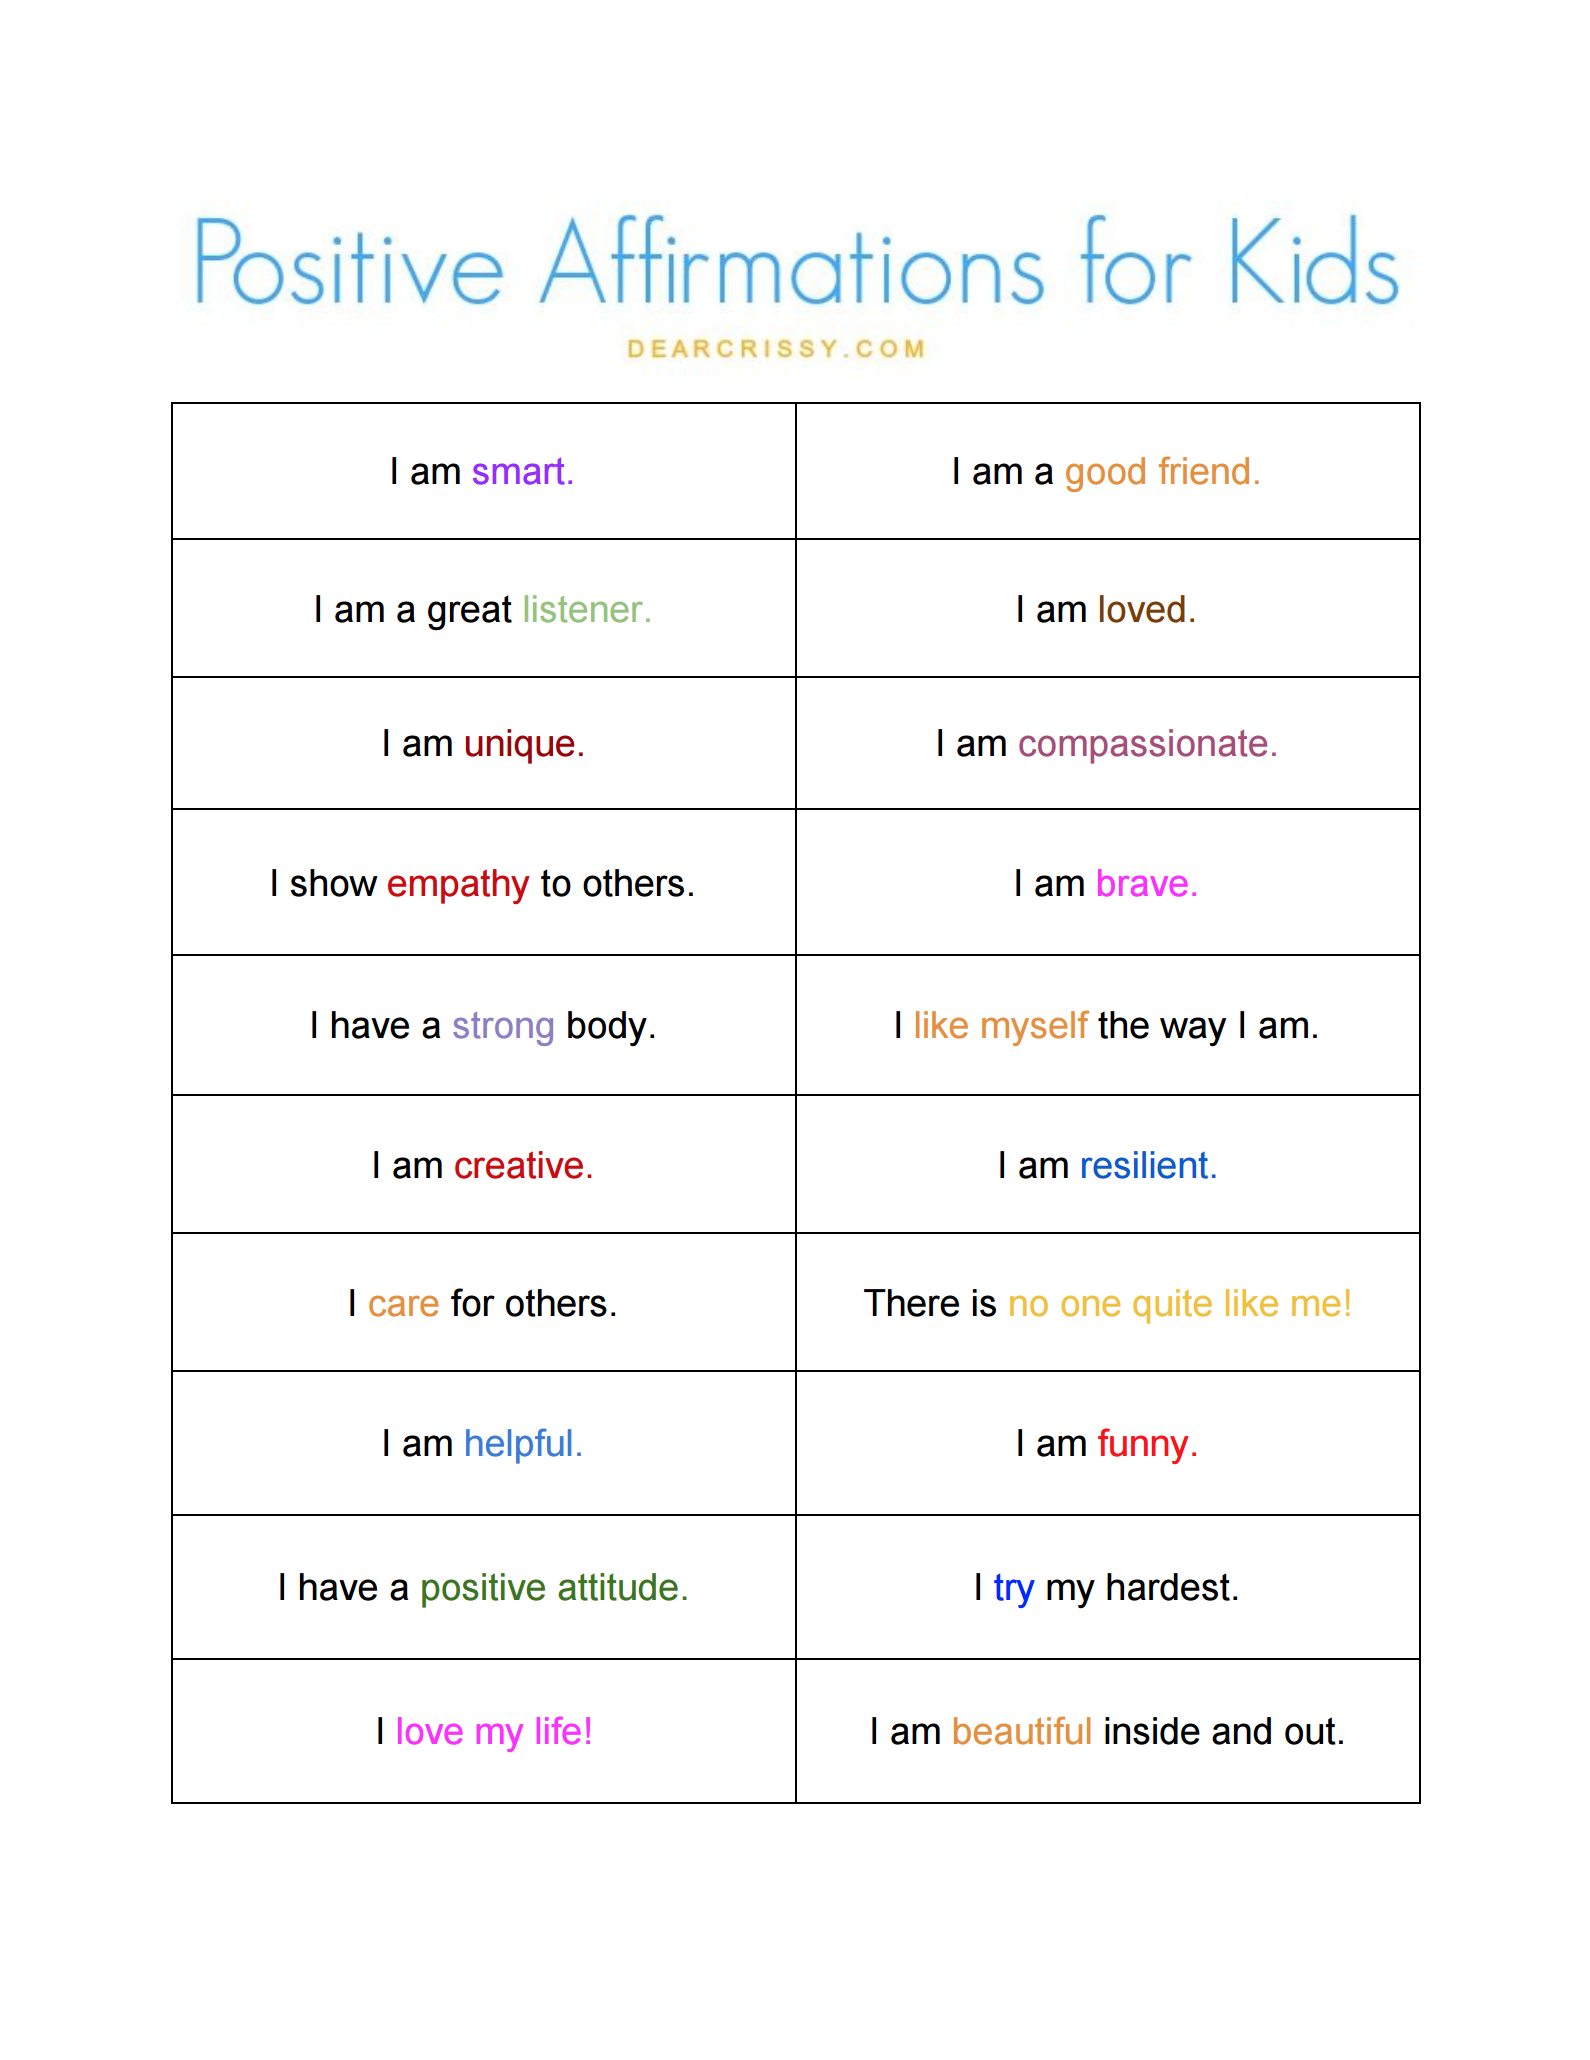 Enjoy This Positive Affirmations For Kids Free Printable